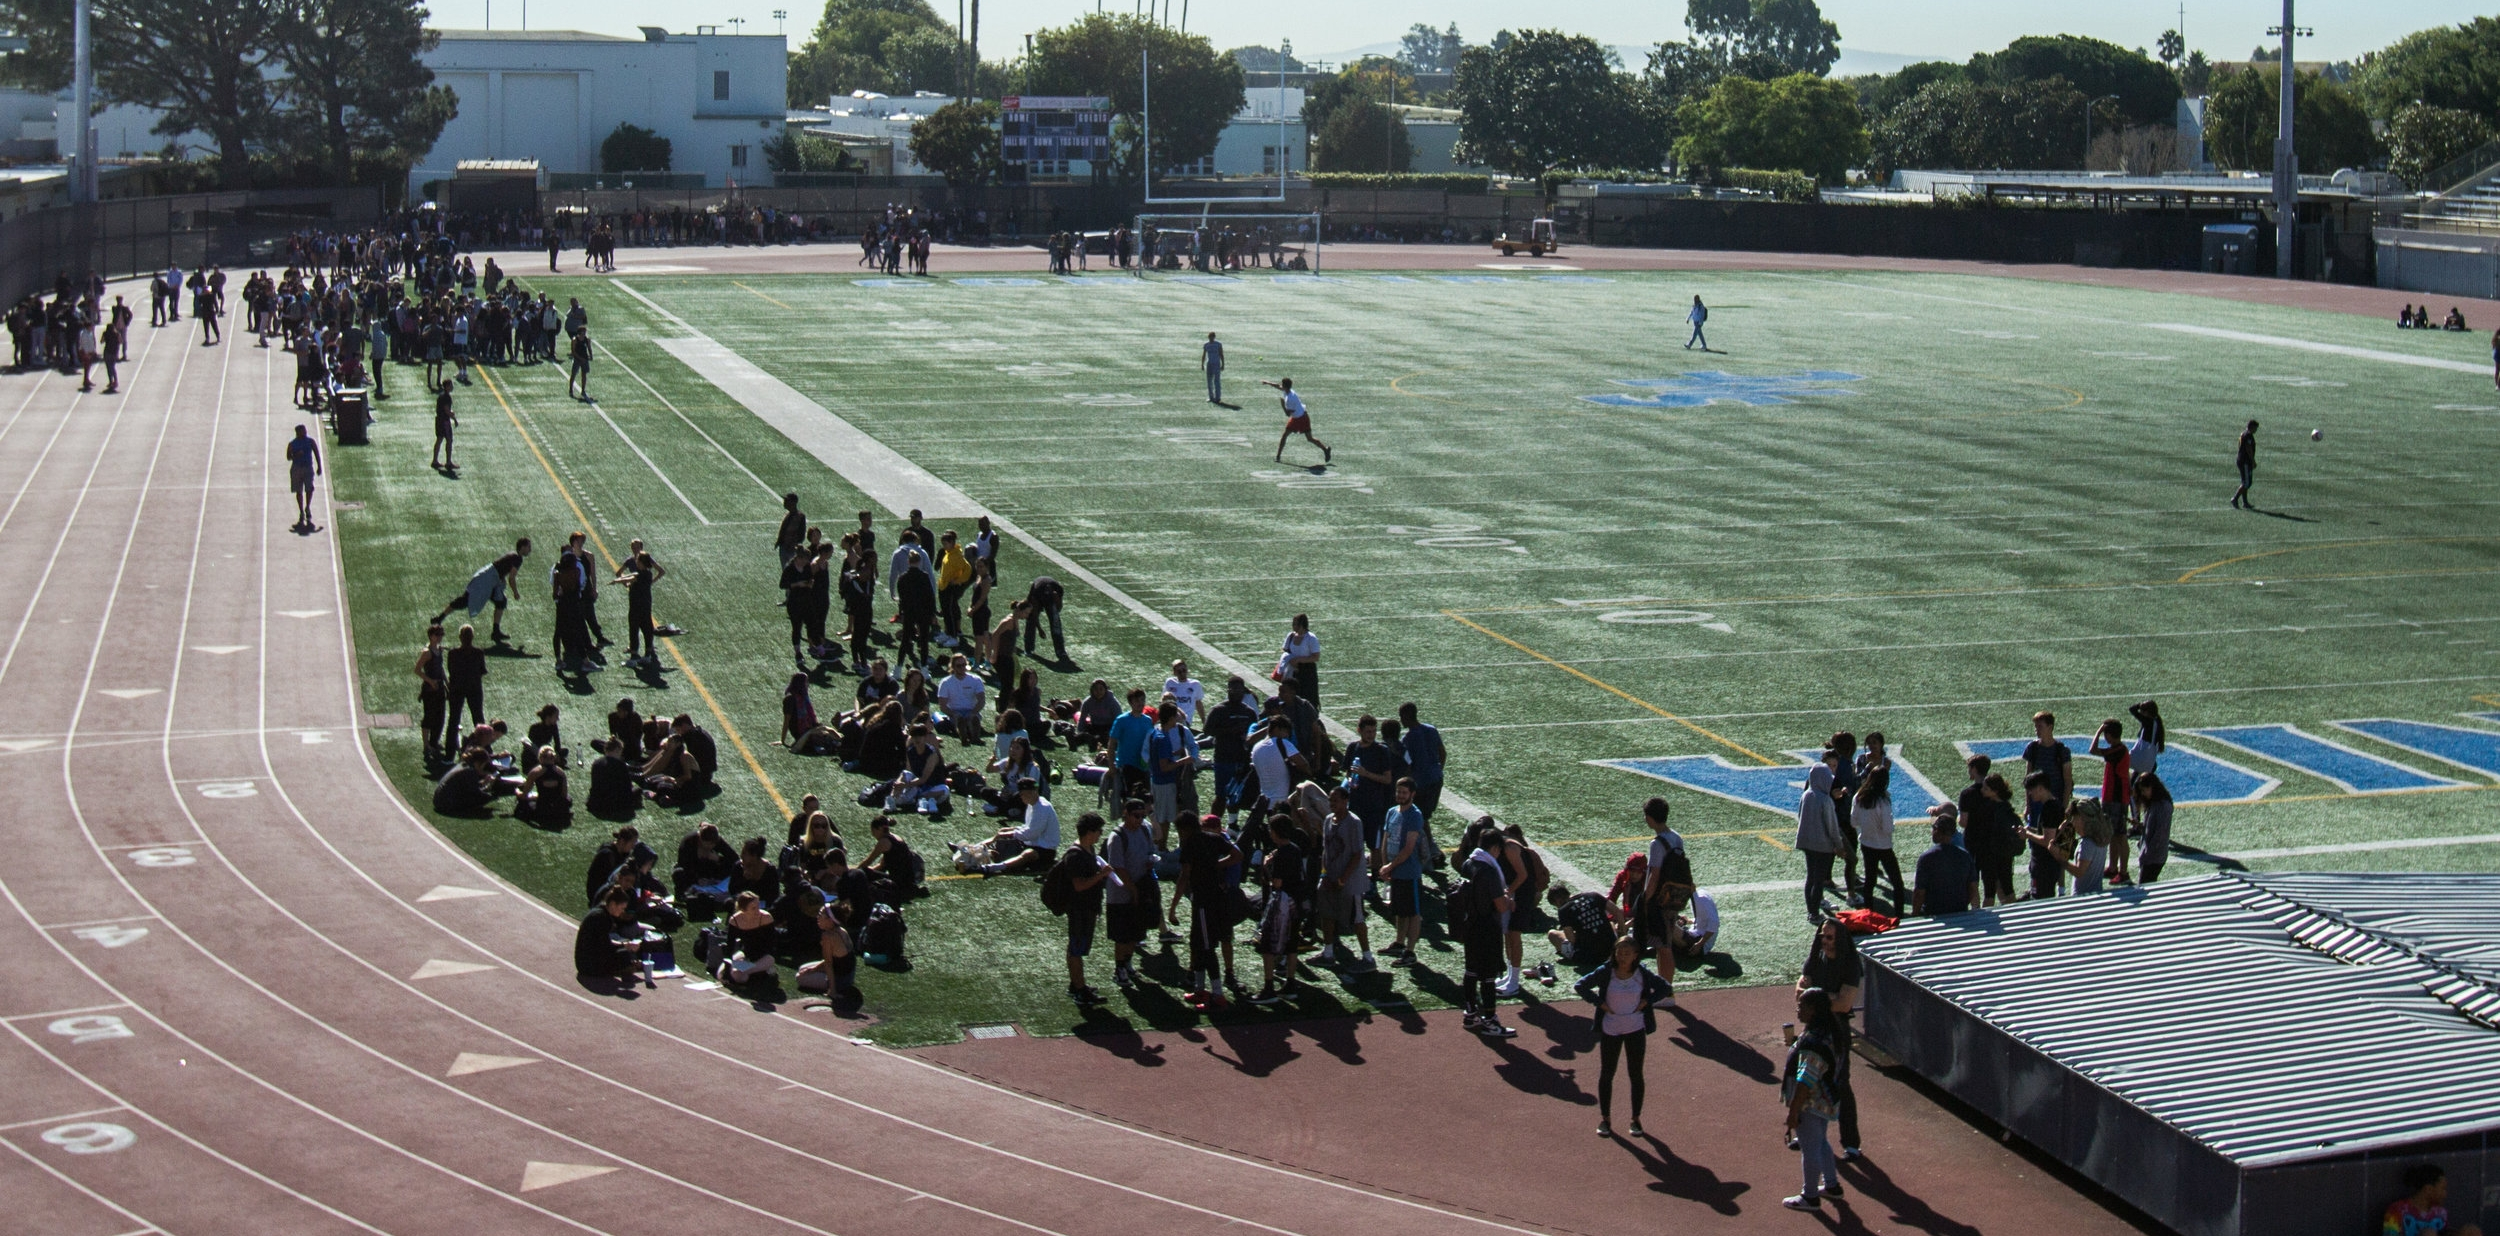 Students outside on the Corsair Field in Santa Monica College in their designated emergency positions after the alarm went off during the Earthquake Shakeout Drill on Thursday October 18, 2018 in Santa Monica, California. (Jacob Victorica/Corsiar Photo)